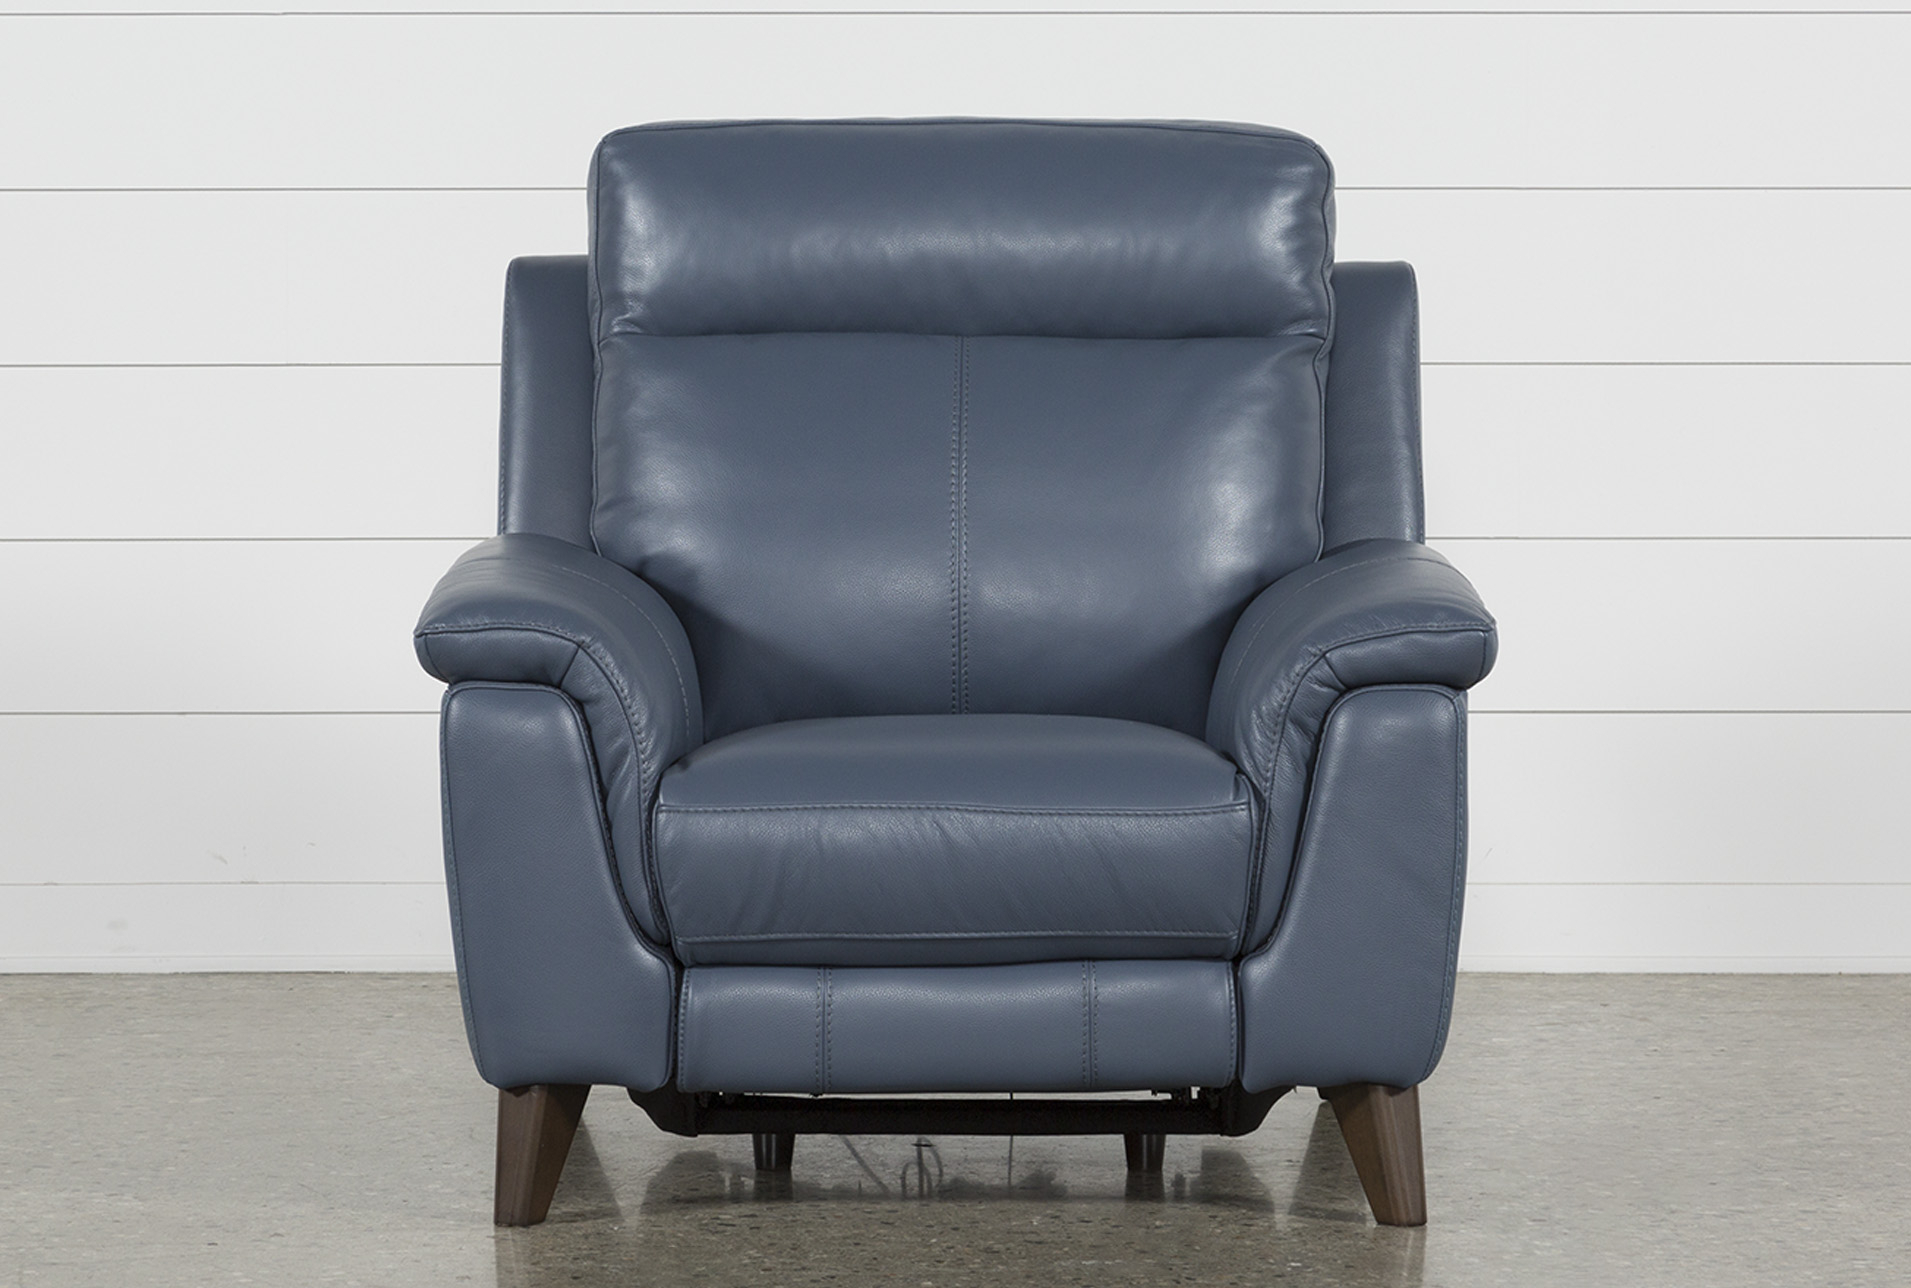 Moana Blue Leather Power Reclining Chair With Usb In 2018 | Products With Regard To Moana Blue Leather Power Reclining Sofa Chairs With Usb (Image 20 of 25)